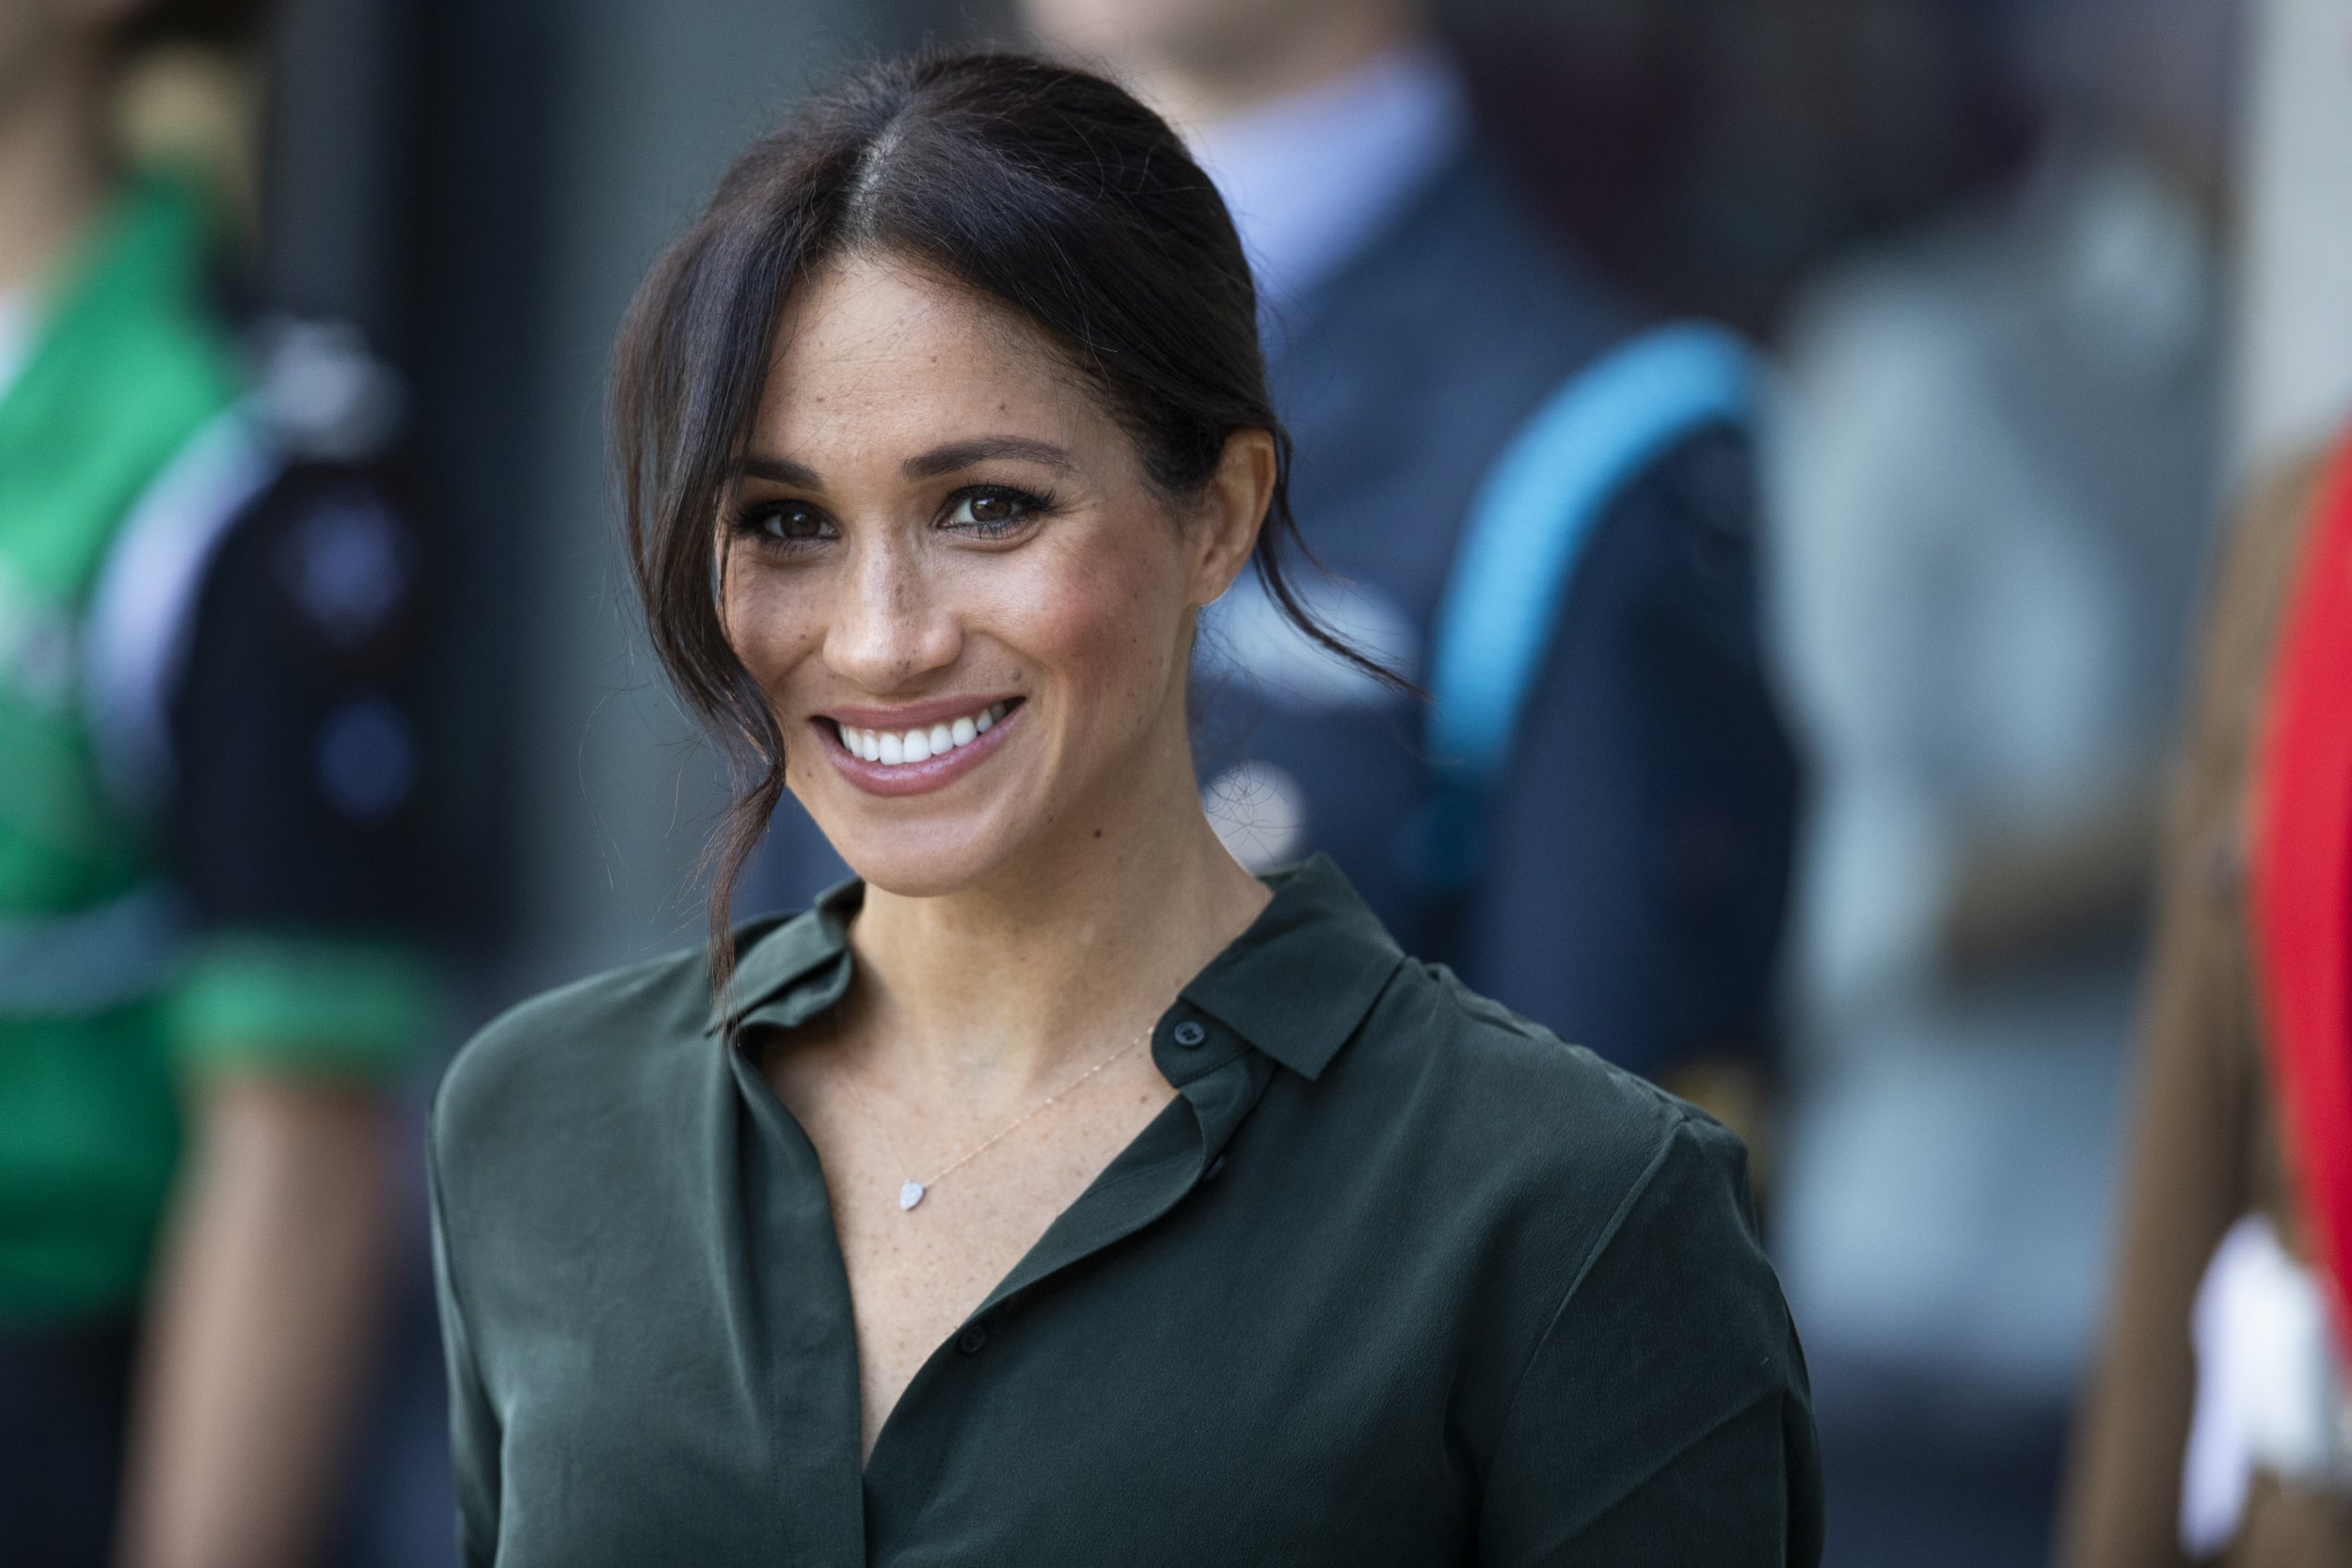 Meghan Markle's Having a Geriatric Pregnancy